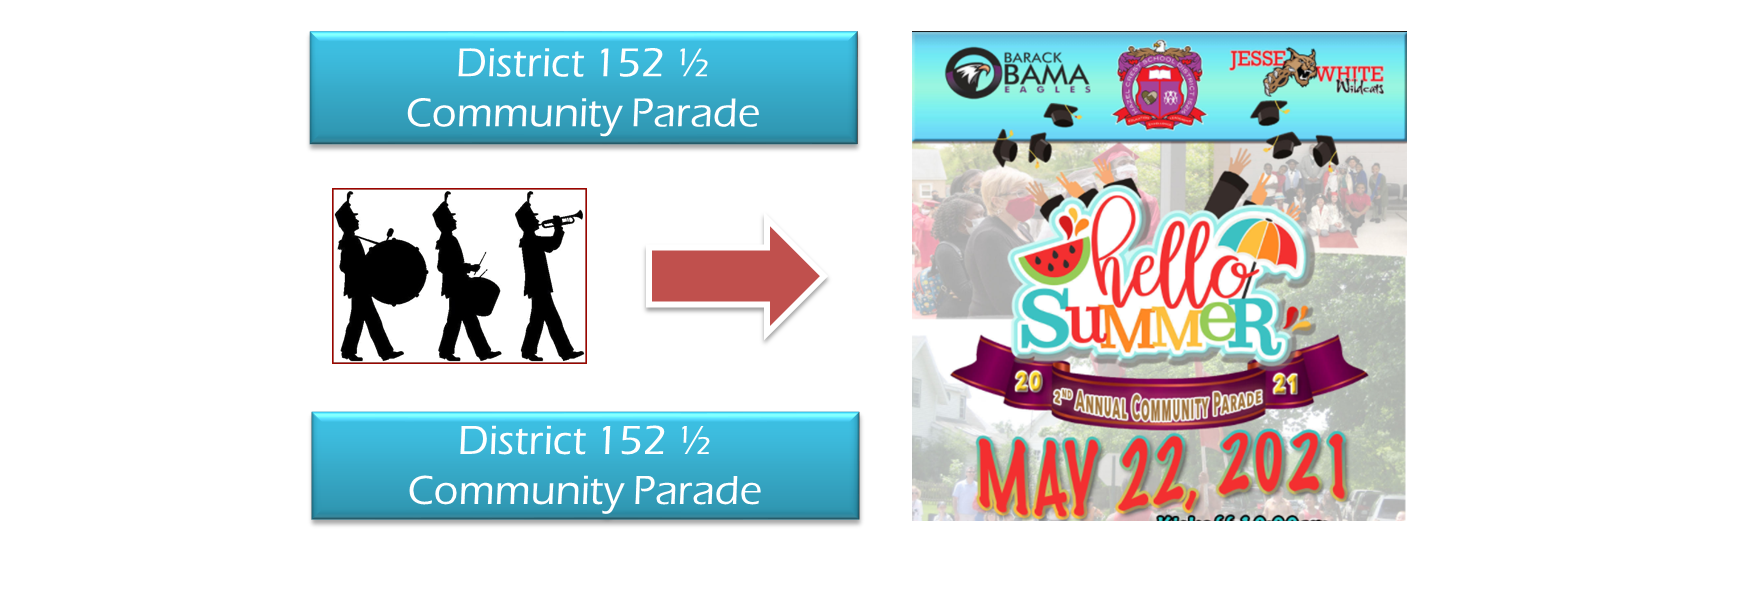 2nd Annual Community Parade